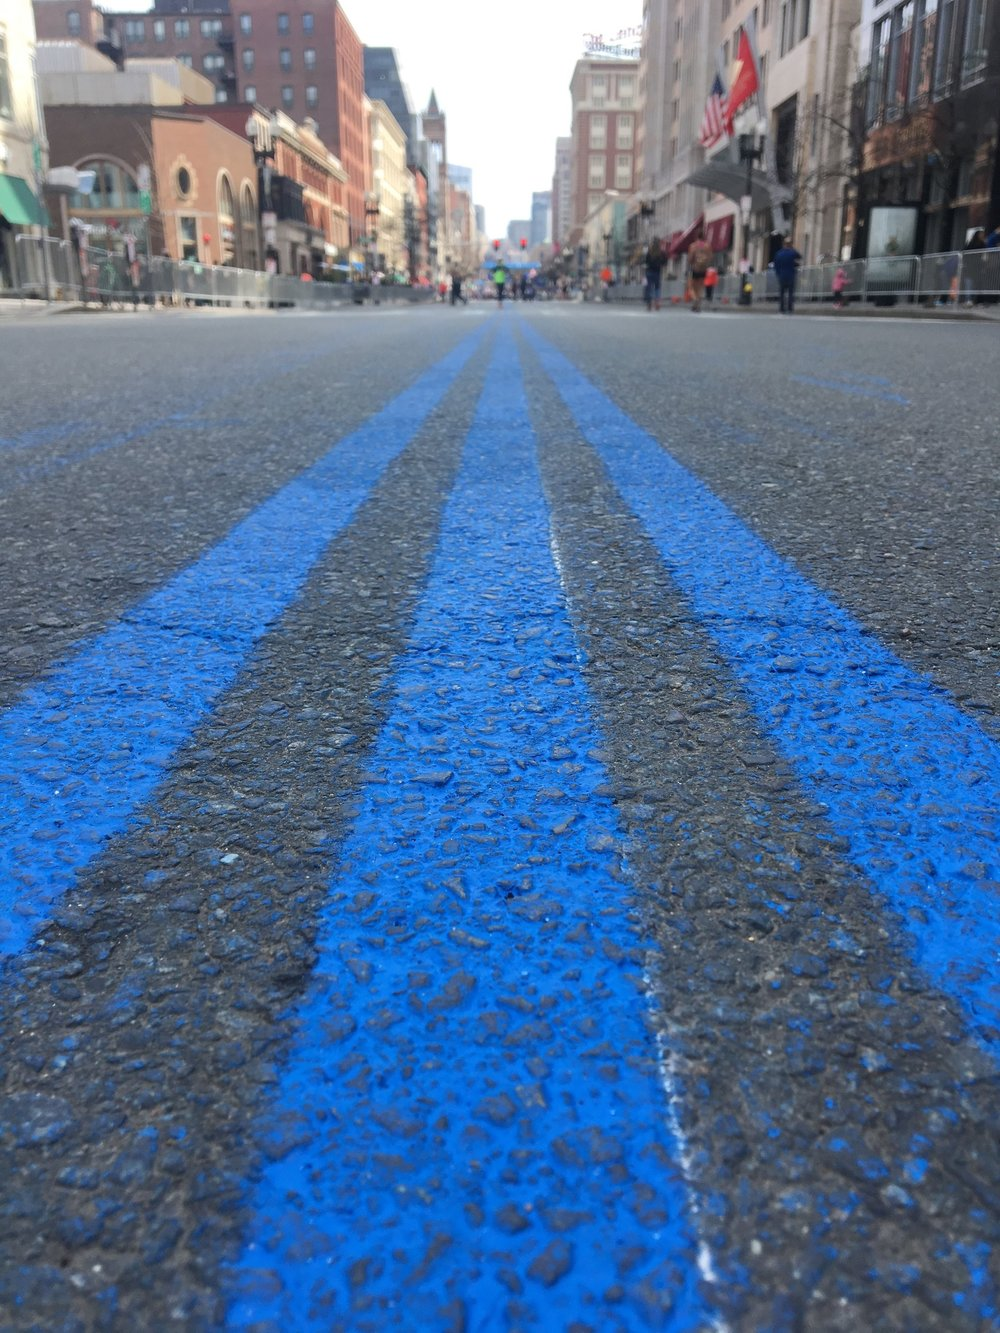 """Within the law enforcement community, thin blue lines are a symbol of the role police officers play in a community be separating good and evil in society. Runners will have a blue-line guided path to the finish time as they make their final left turn at Hereford Street."" - BPD"